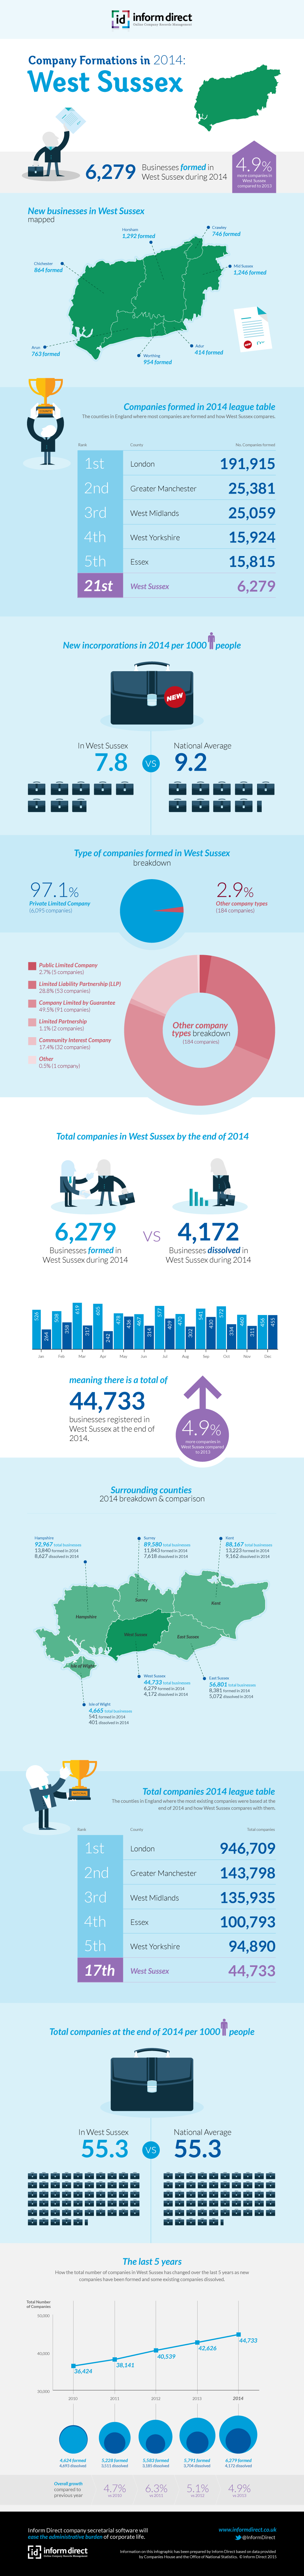 Inform Direct - Company Formations in West Sussex 2014 Infographic